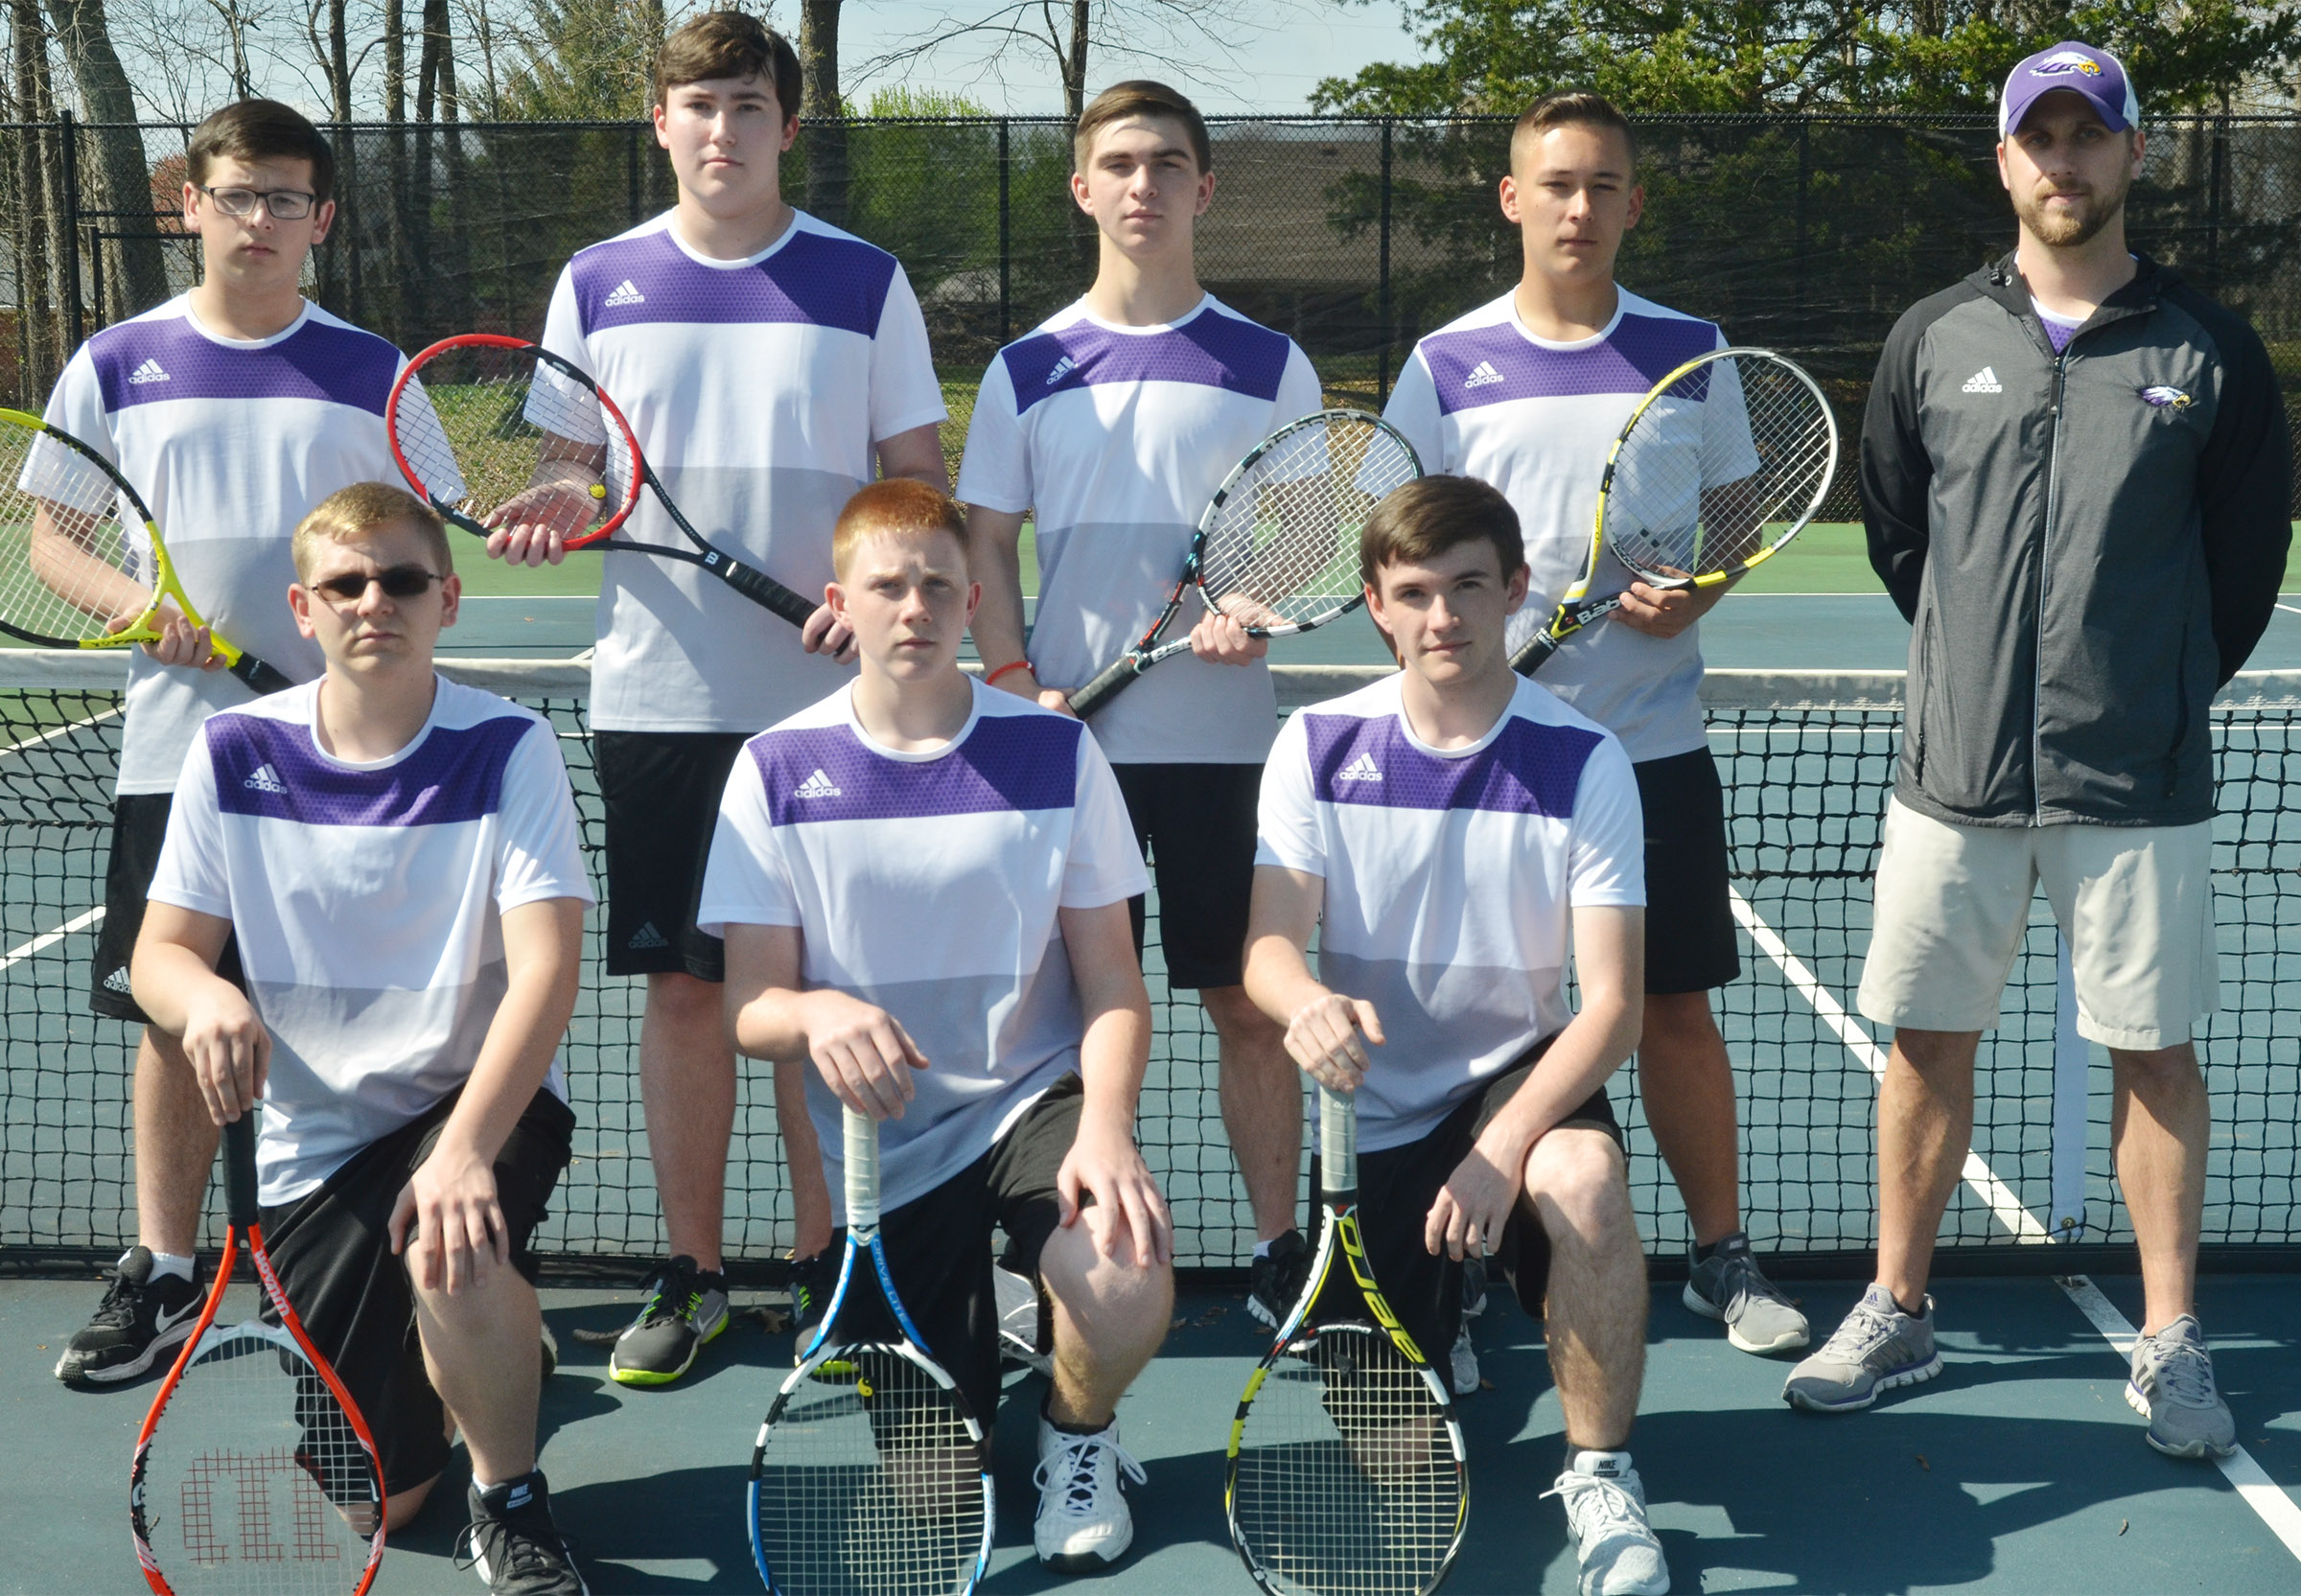 This year's CHS boys' tennis team is, from left, front, sophomore Brandon Greer, freshman Patrick Walker and junior Jackson Hunt. Back, Campbellsville Middle School eighth-grader Devan Keith, senior Zack Settle, juniors Cass Kidwell and Cody Davis and coach Tyler Hardy.